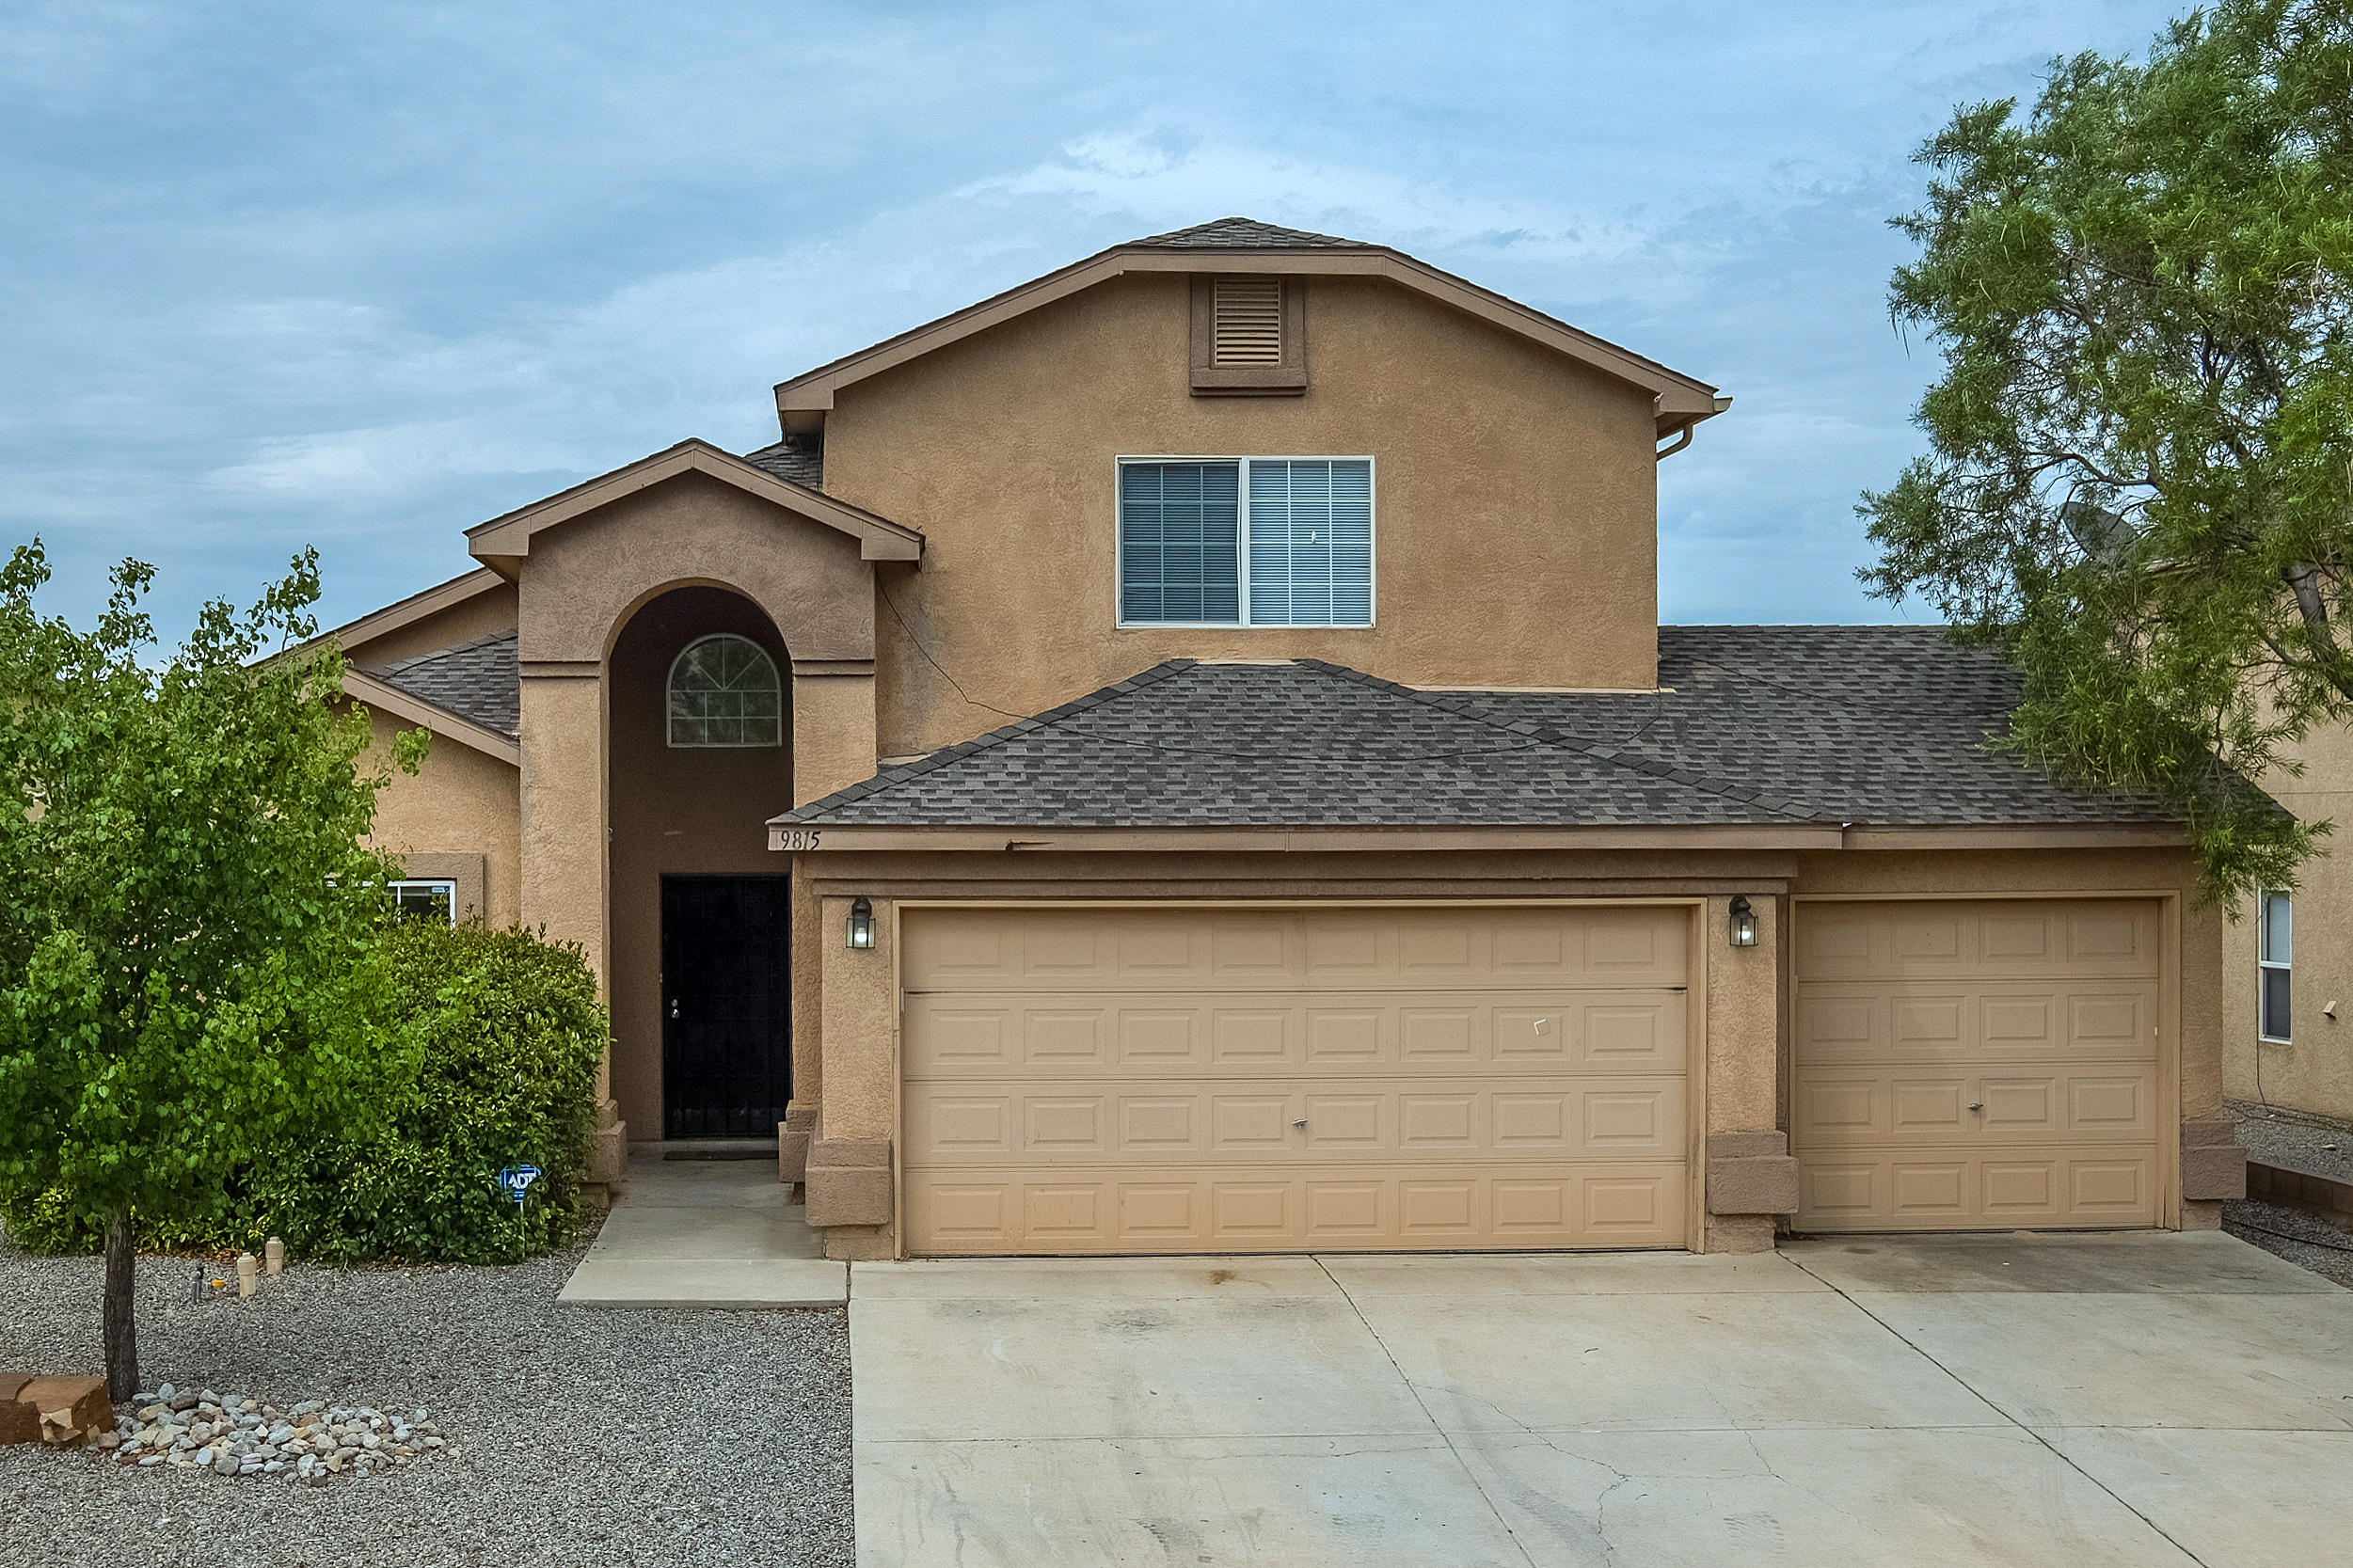 Back on the Market with a NEW Roof! Located in Sungate Estates Gated Community on a Completely Landscaped Large Corner Lot. This Home has a 3 Car Garage with Garage Openers for Both Doors and also includes a 220 Outlet. There are 2 Living Areas and a Balcony with Sandia Mountain Views. If You are Looking for 2 Living Areas, Three Bedrooms, all with Walk In Closets, Space for a Possible 4th Bedroom, 3 Bathrooms, Downstairs Owner's Suite on Extra Large Lot, then Look No Further. Make An Appointment Today to See This Home.